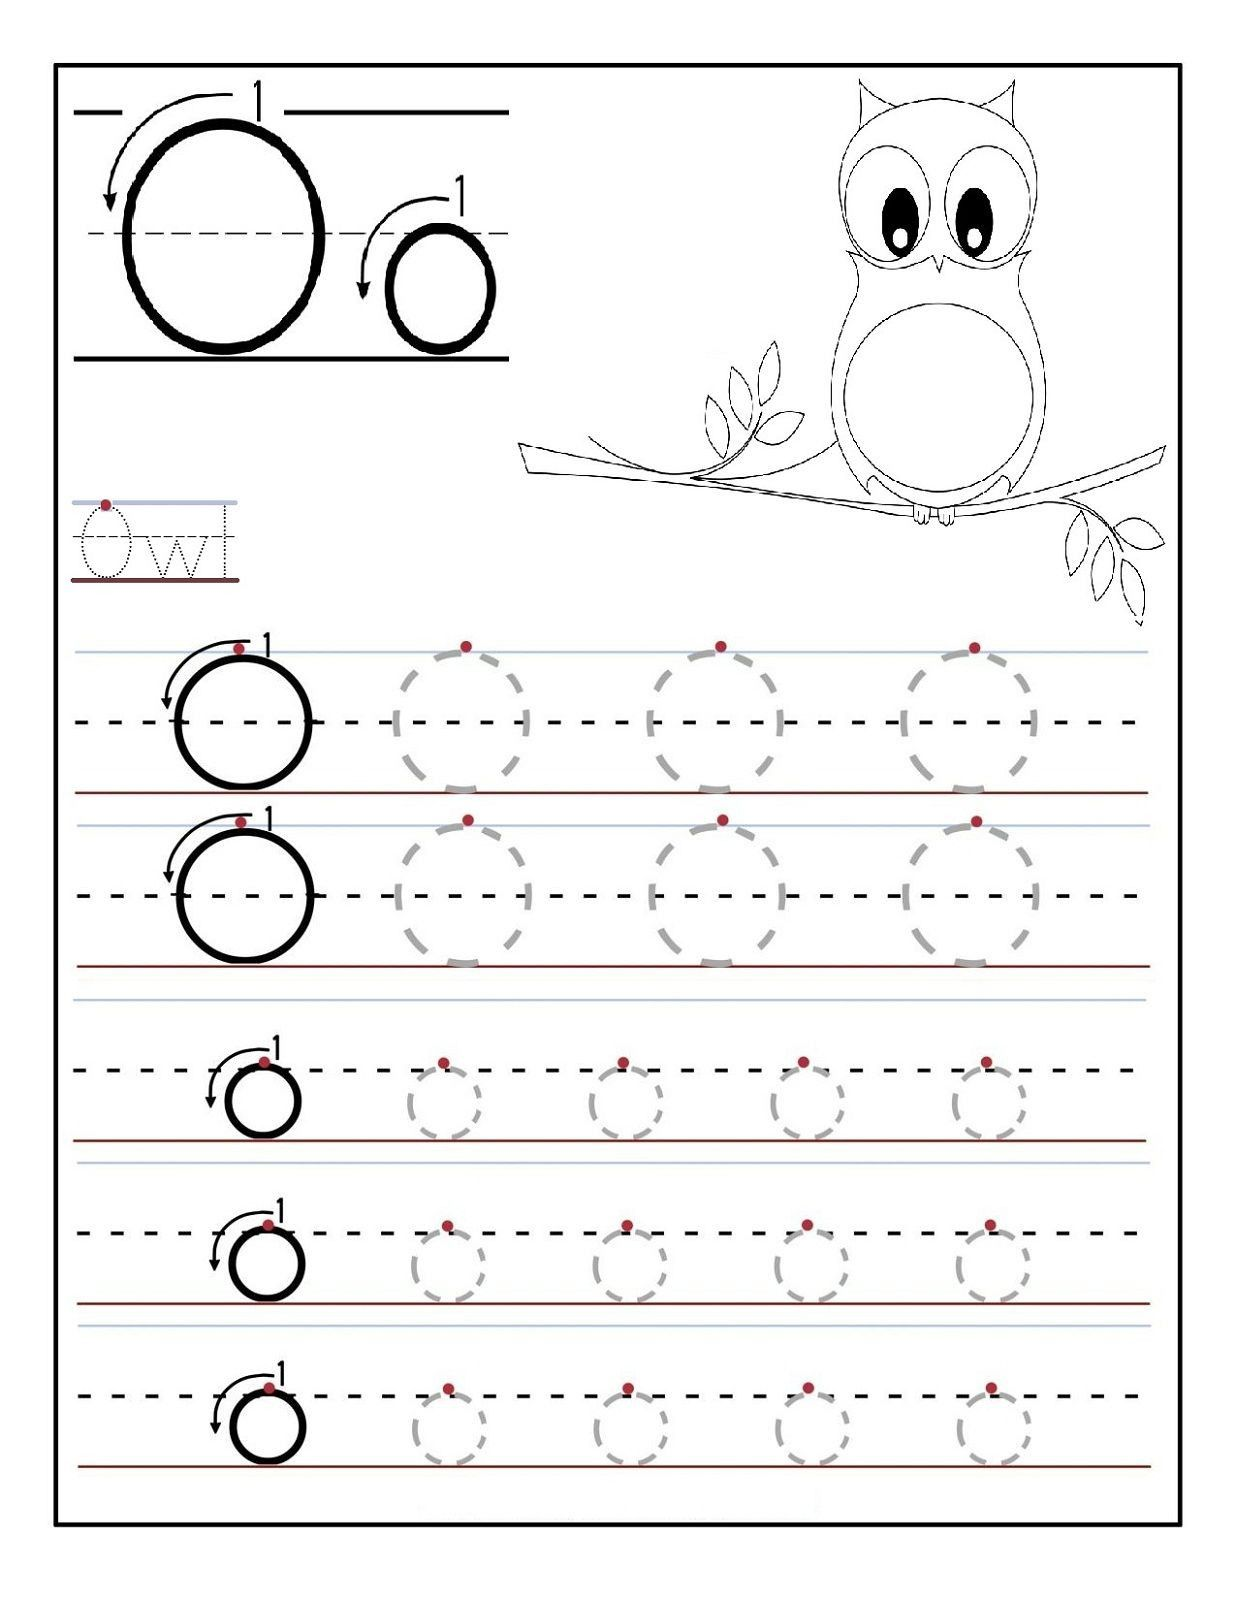 4 Letter Q Writing Practice Worksheet Printable In